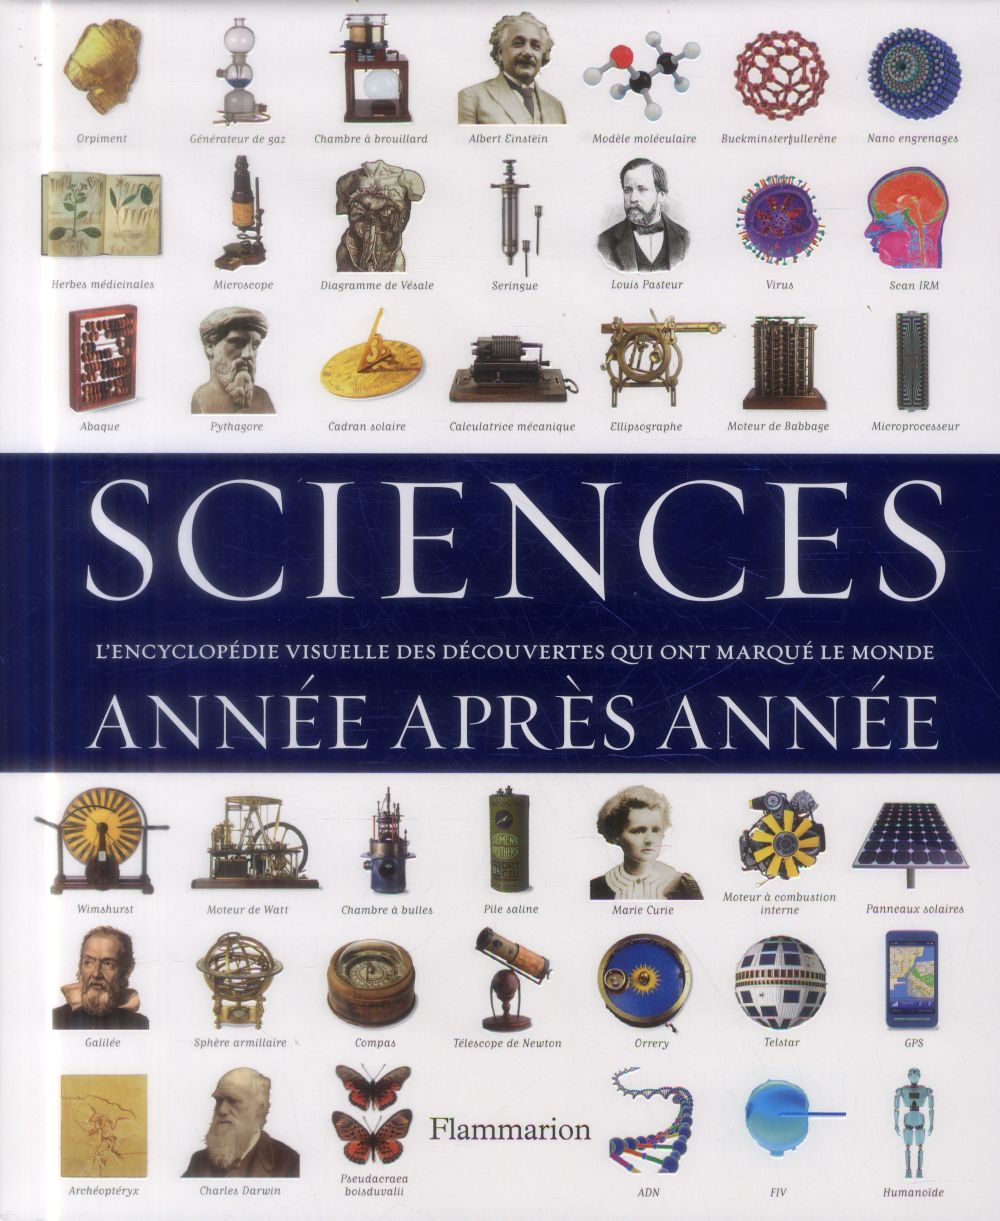 SCIENCES ANNEE APRES ANNEE